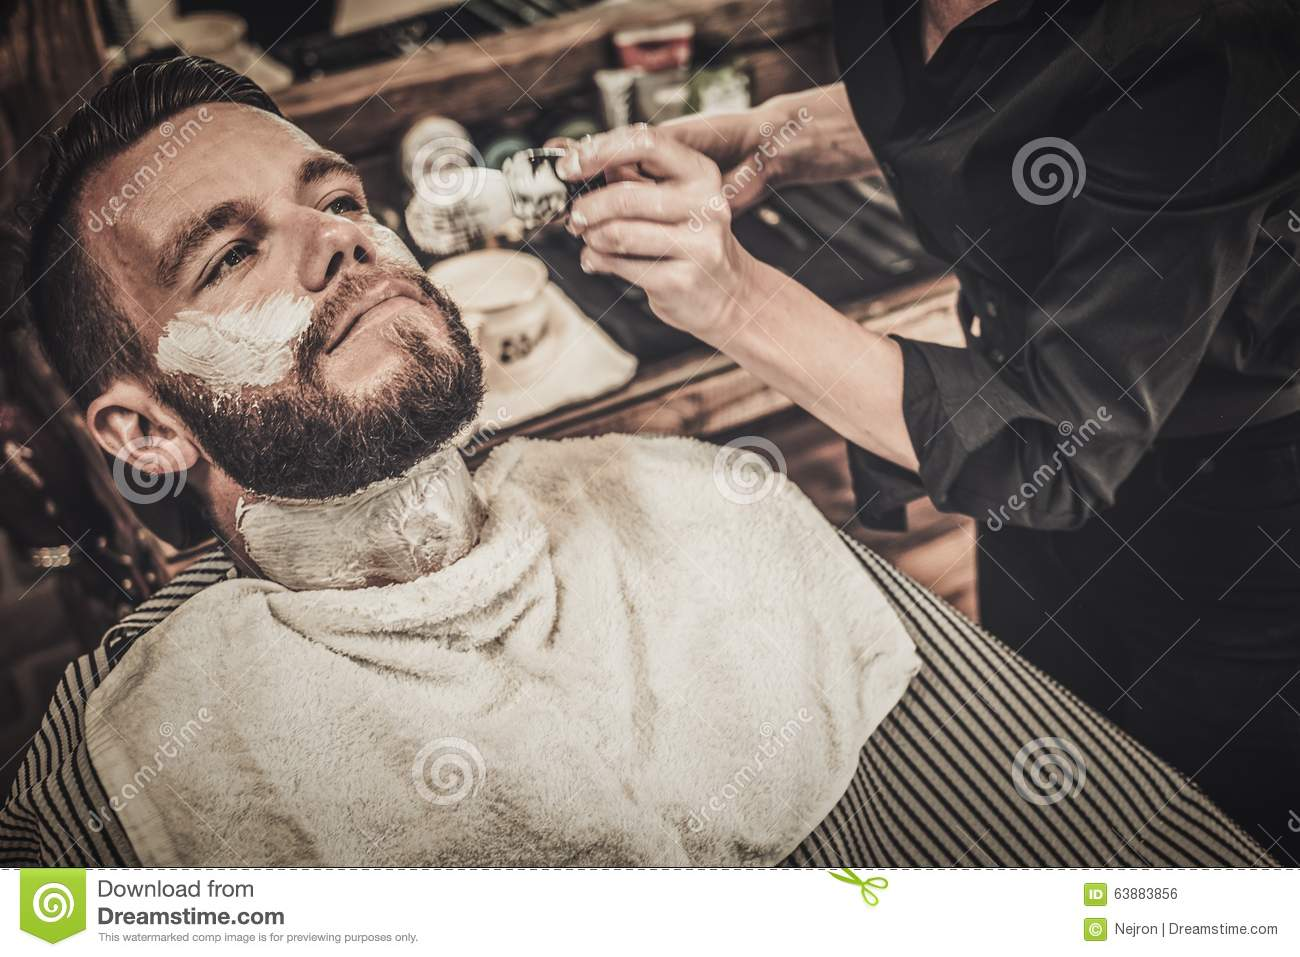 Beard Shaving In Barber Shop Royalty Free Stock